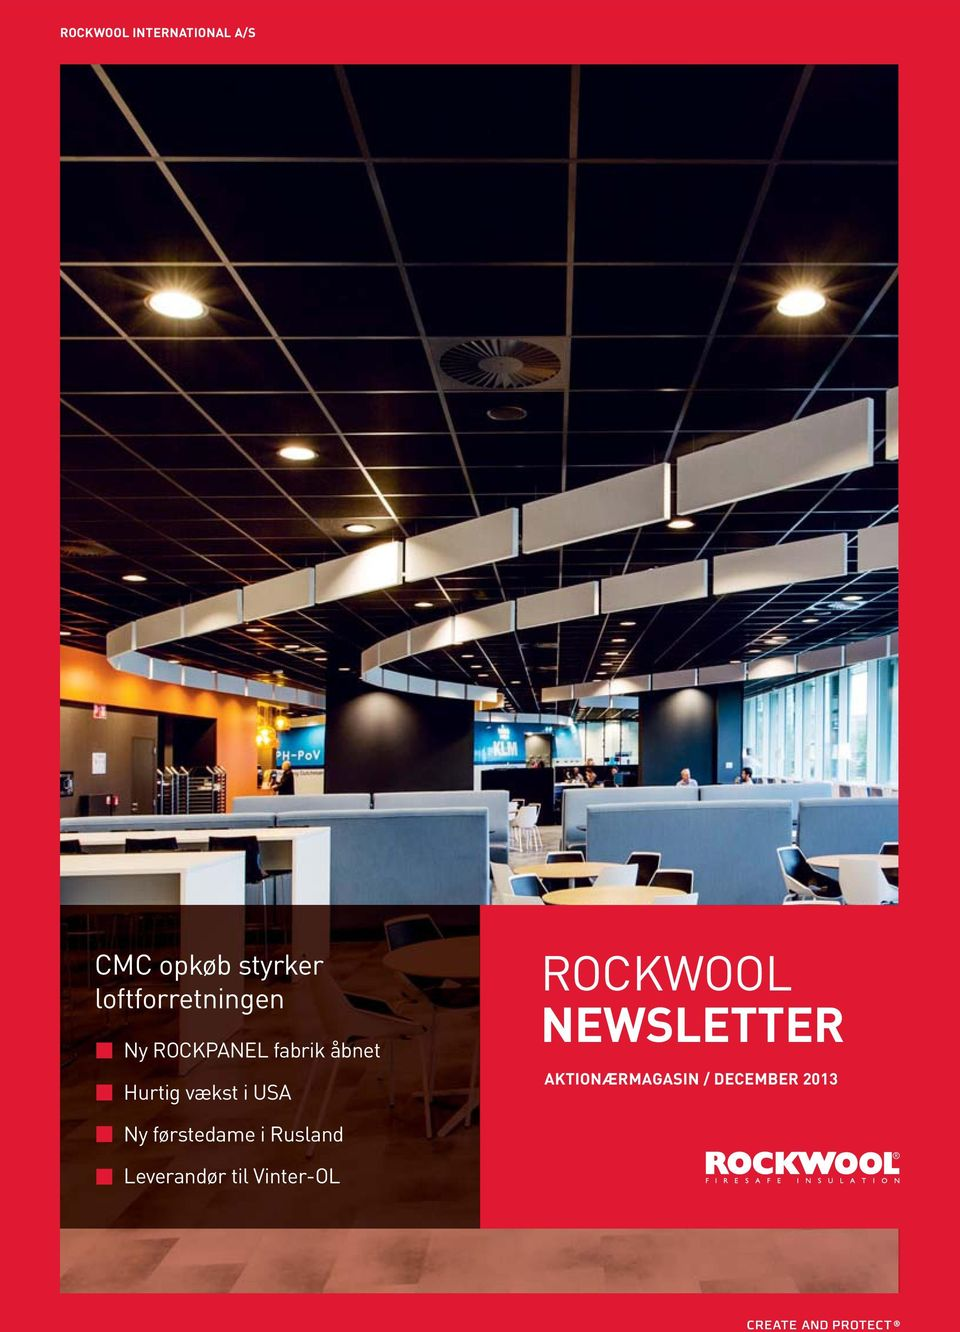 vækst i USA ROCKWOOL NEWSLETTER AKTIONÆRMAGASIN /